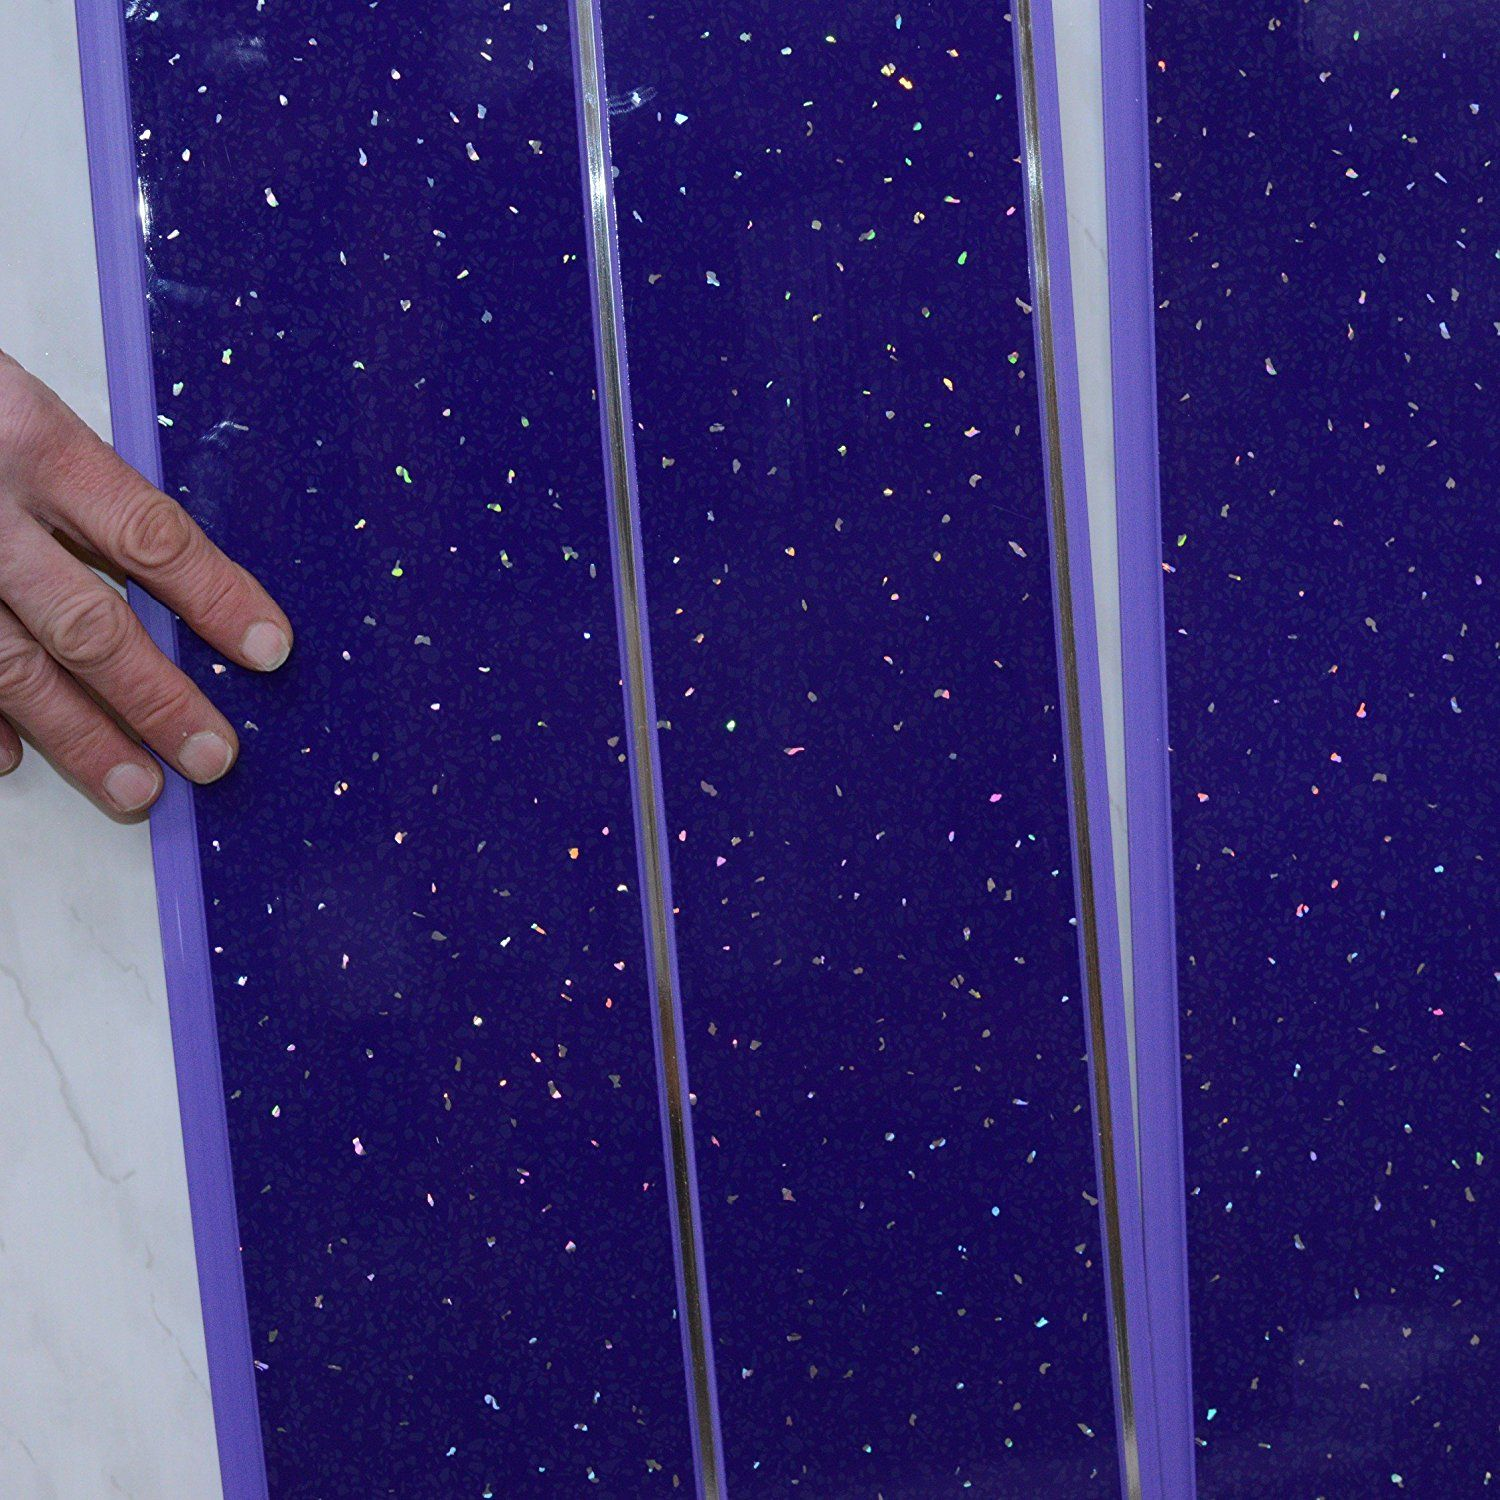 Bathroom Wall Panels Pvc For Shower Cladding Wall Panels Purple Sparkle With Silver 100 Waterproof By Clad Bathroom Wall Panels Bathroom Paneling Wall Panels